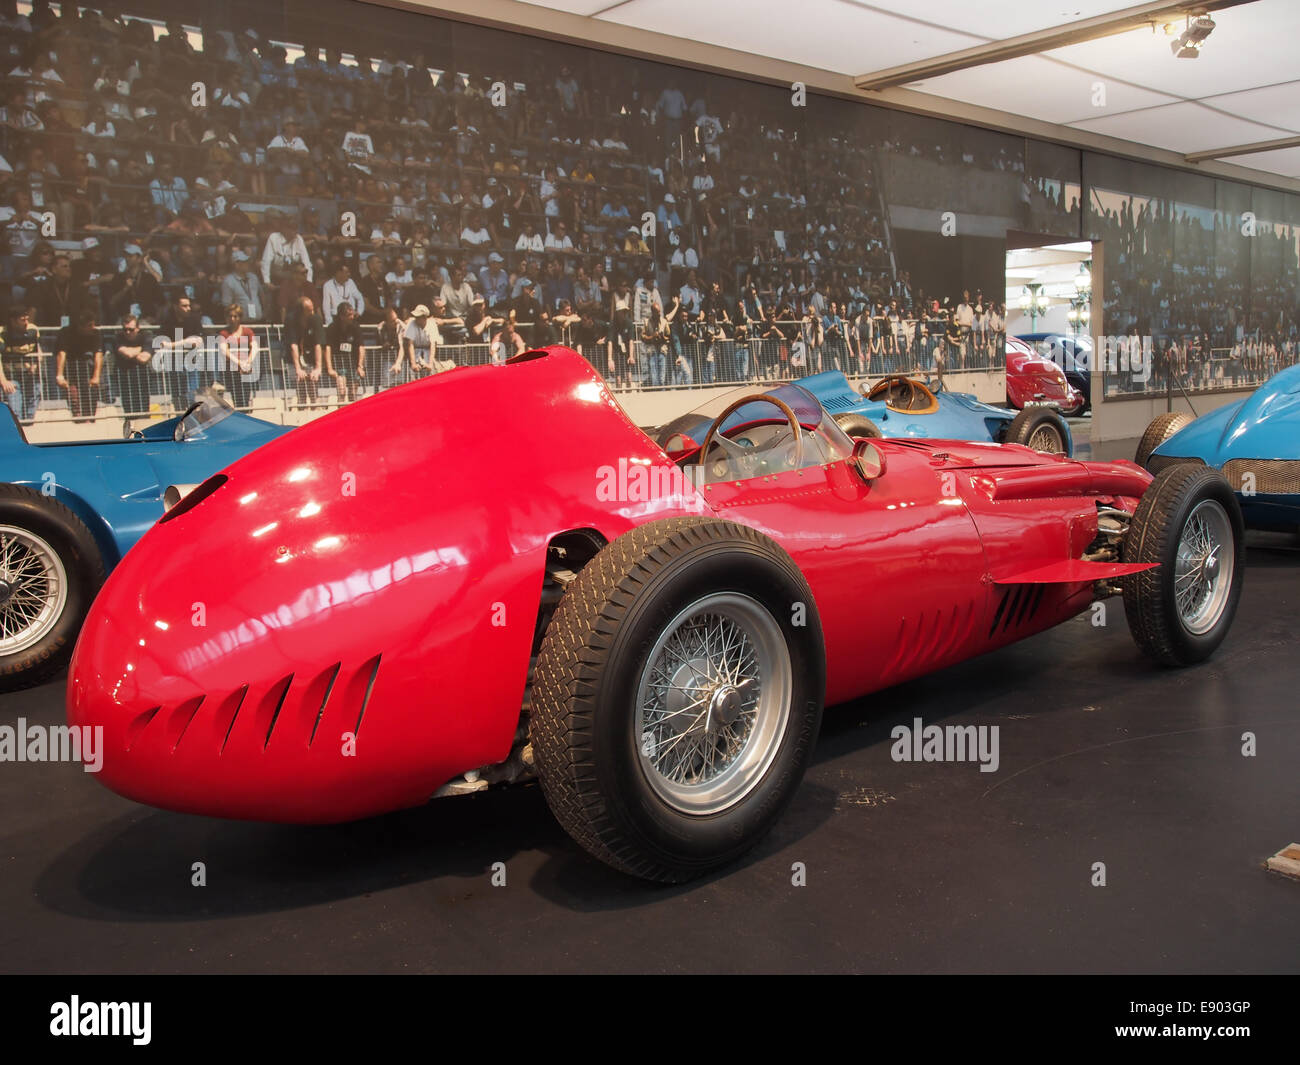 1958 Maserati GP 250, 6 cylinder, 290hp, 2494cm3, 280kmh, photo 3 - Stock Image